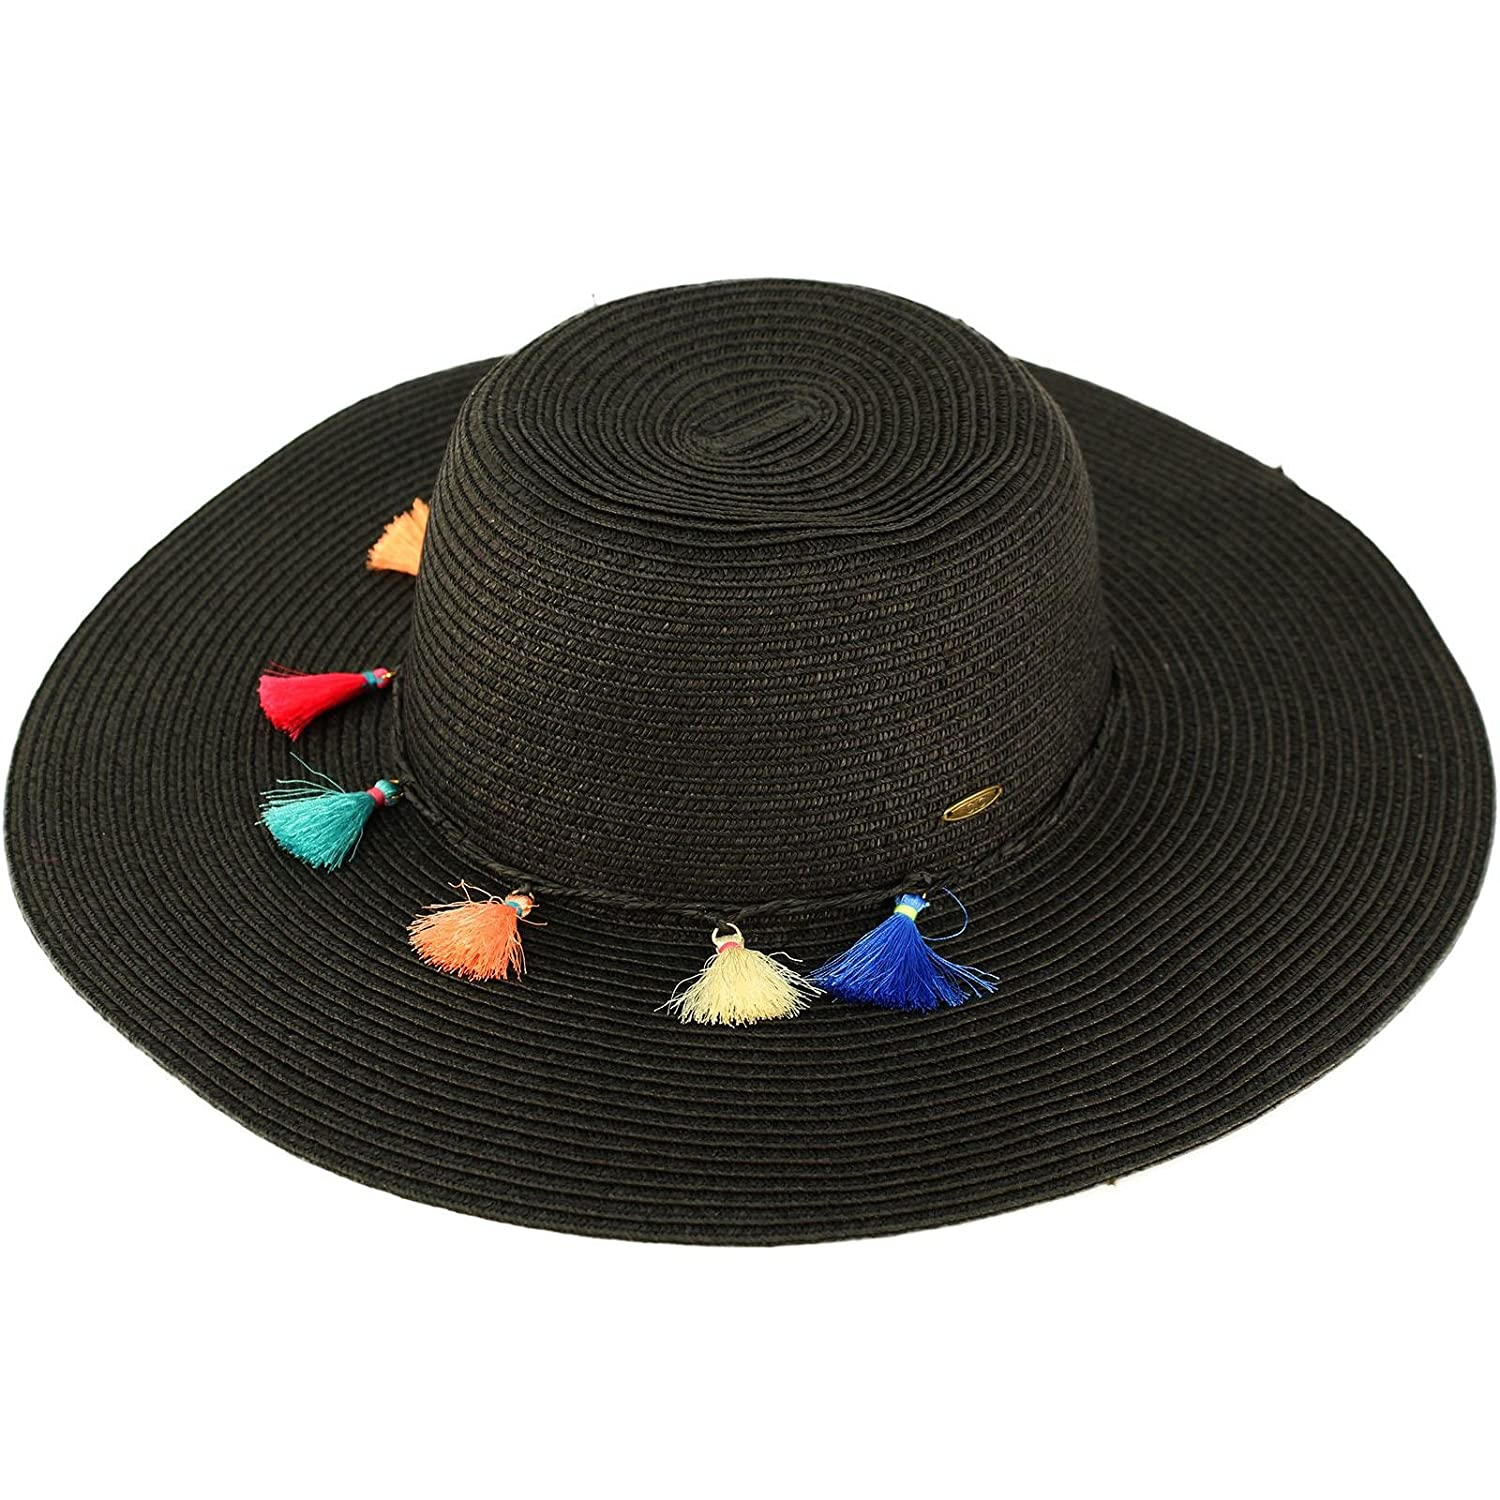 264847f5d4541 Top1  C.C Fun Tassels Hatband Floppy Wide Brim 4